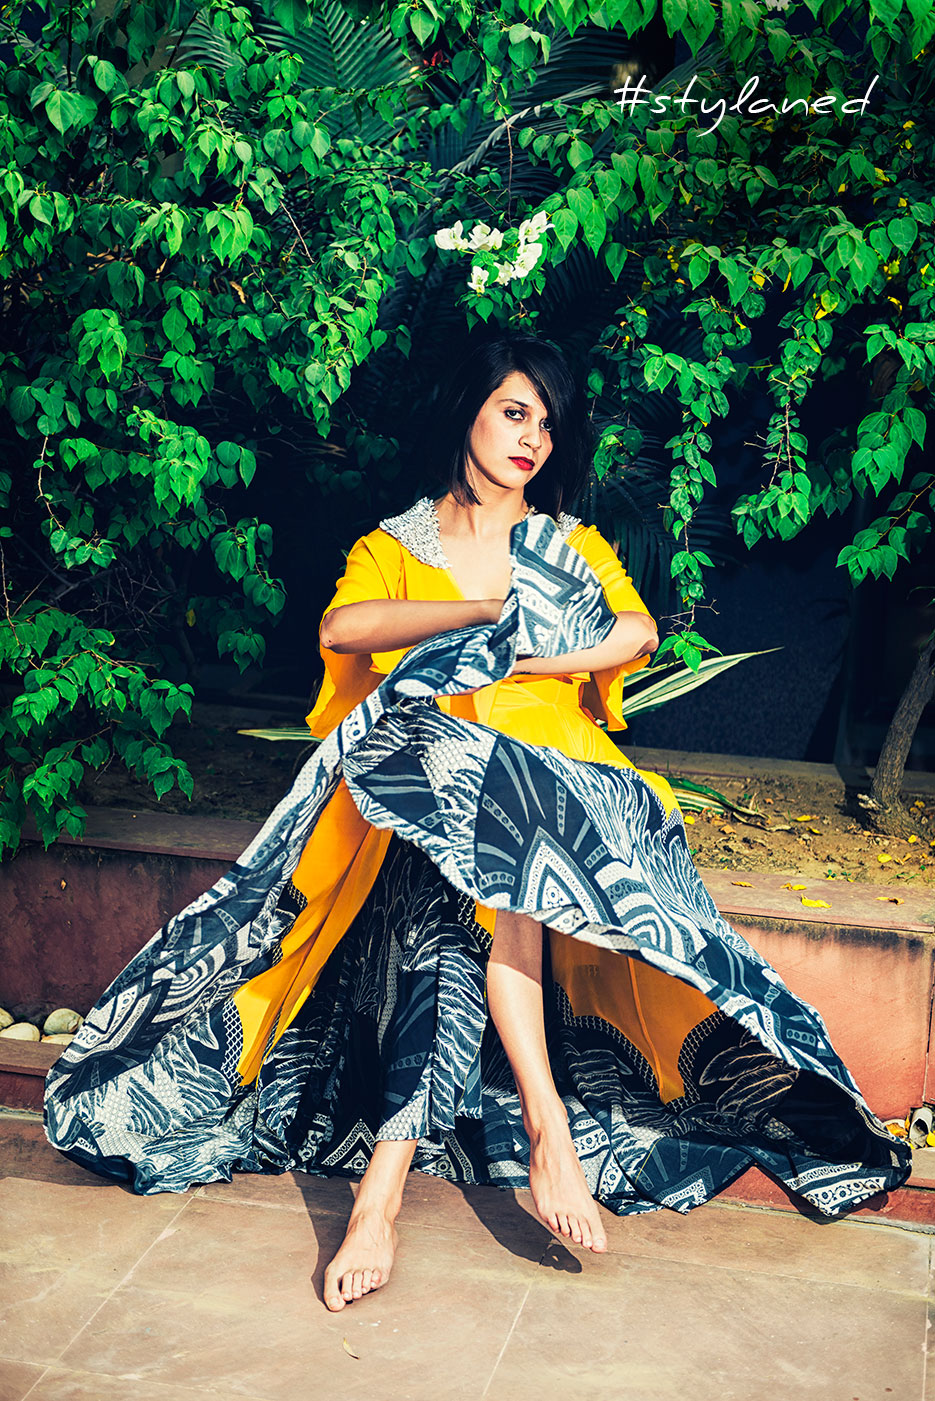 #stylaned Fashion features by photographer Naina Redhu and designer / stylist / blogger Akanksha Redhu for Ritu Kumar